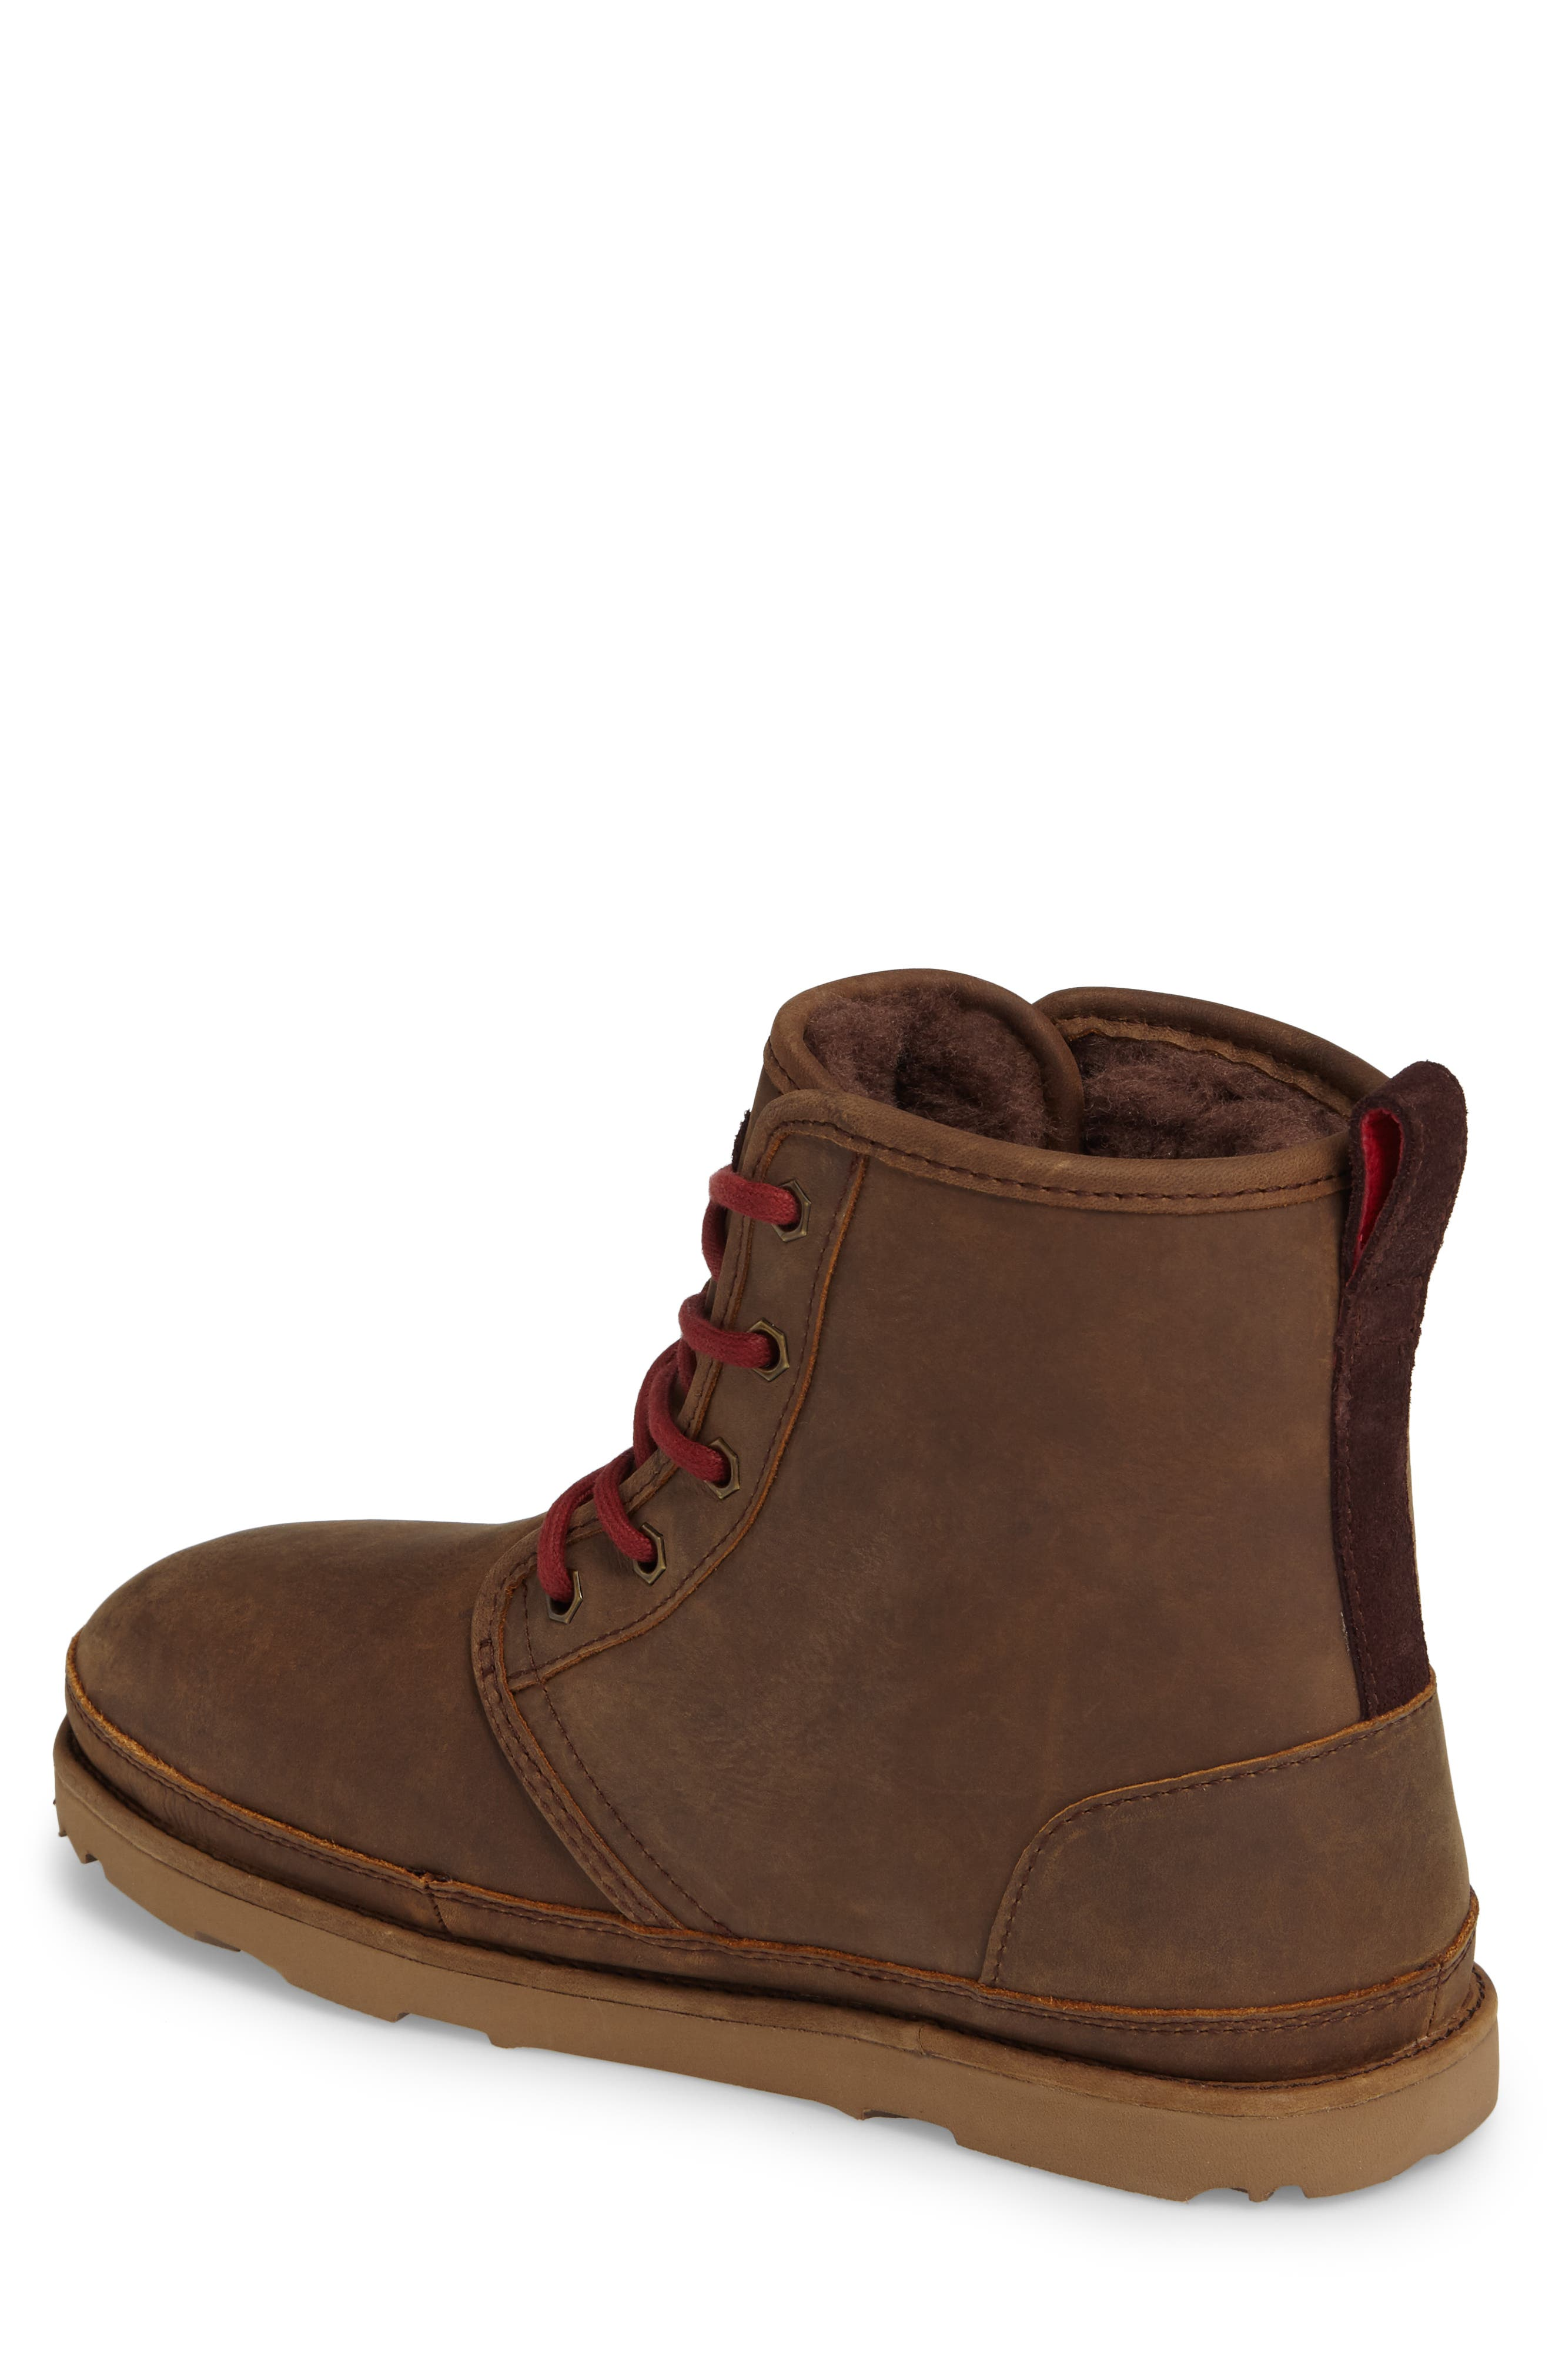 Harkley Plain Toe Boot,                             Alternate thumbnail 2, color,                             Grizzly